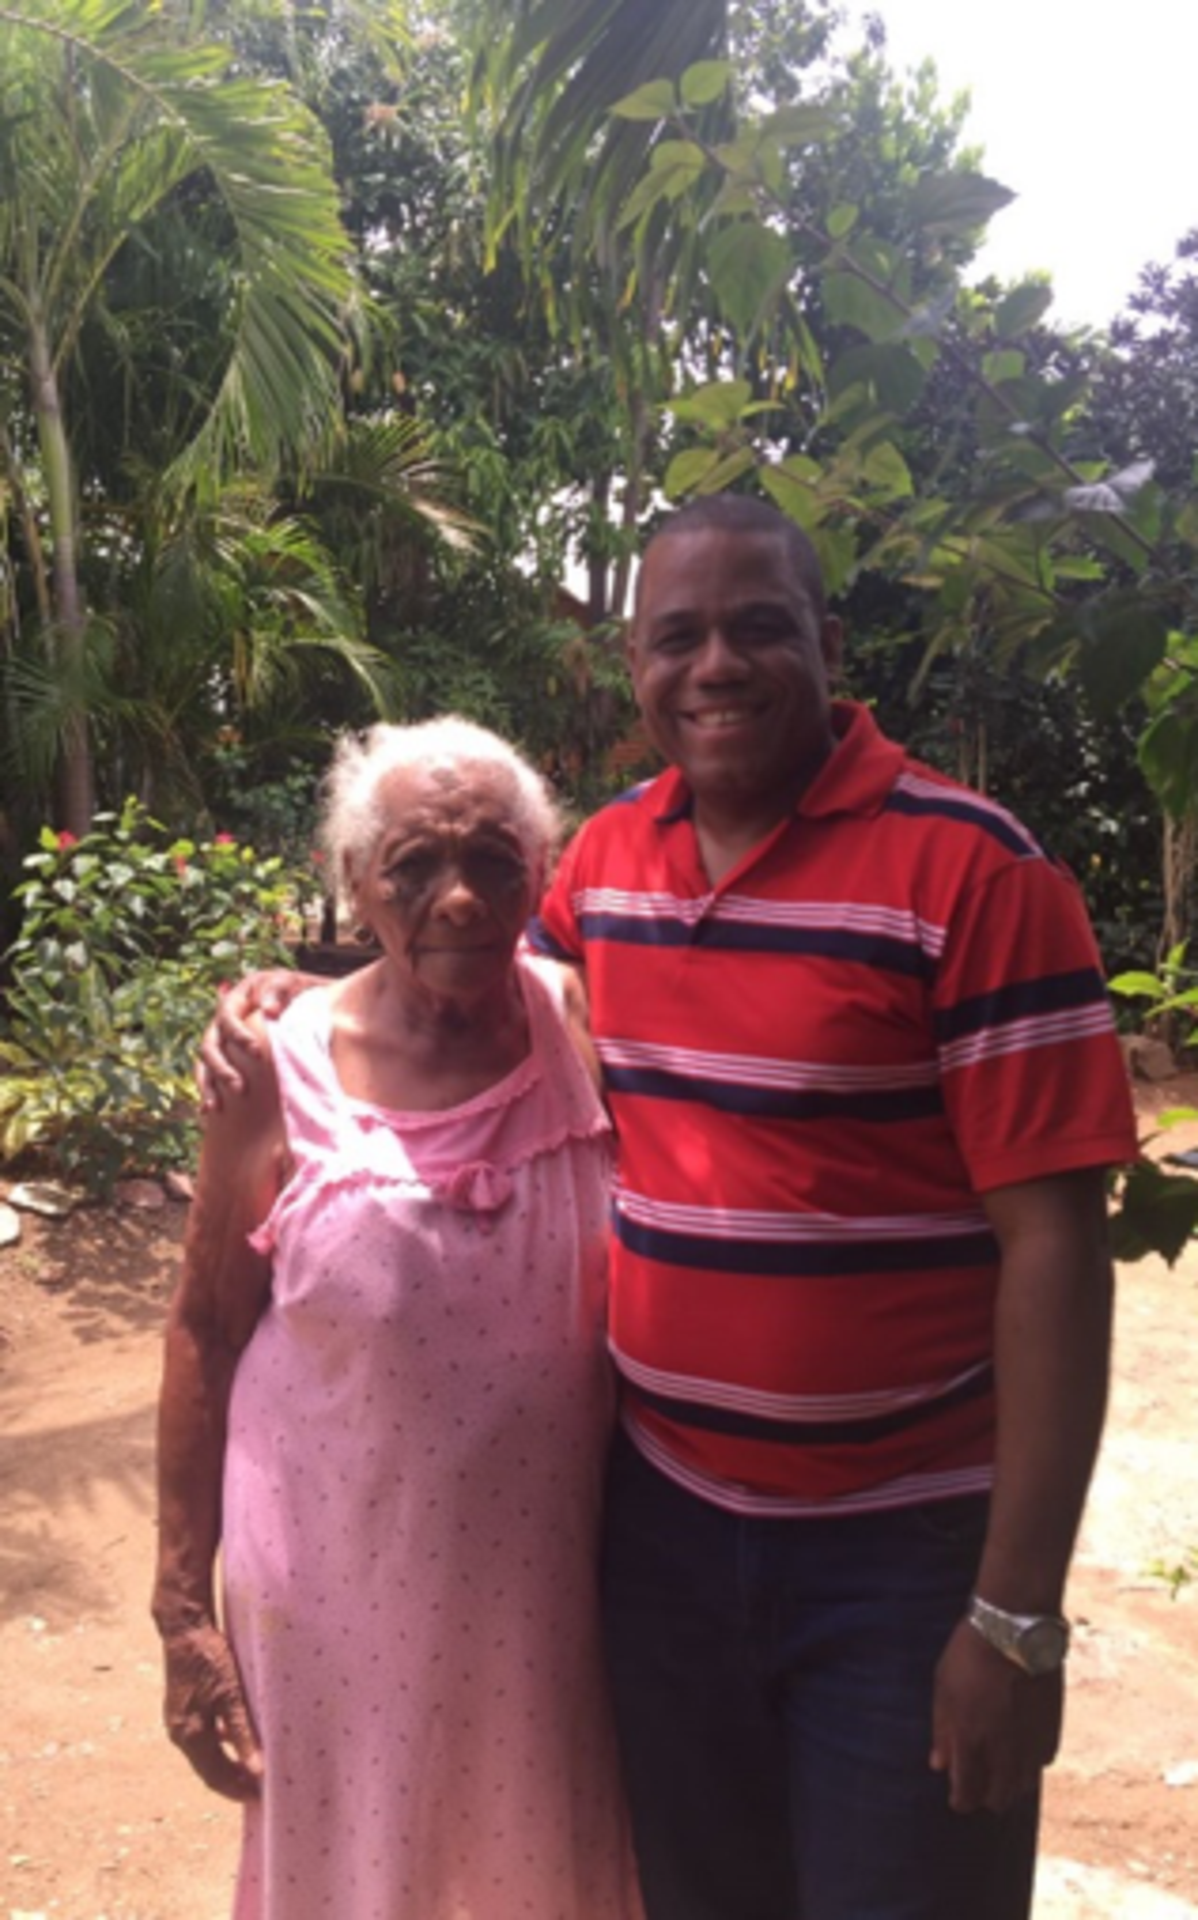 With my aunt Florita Peña, who is 95 years old.